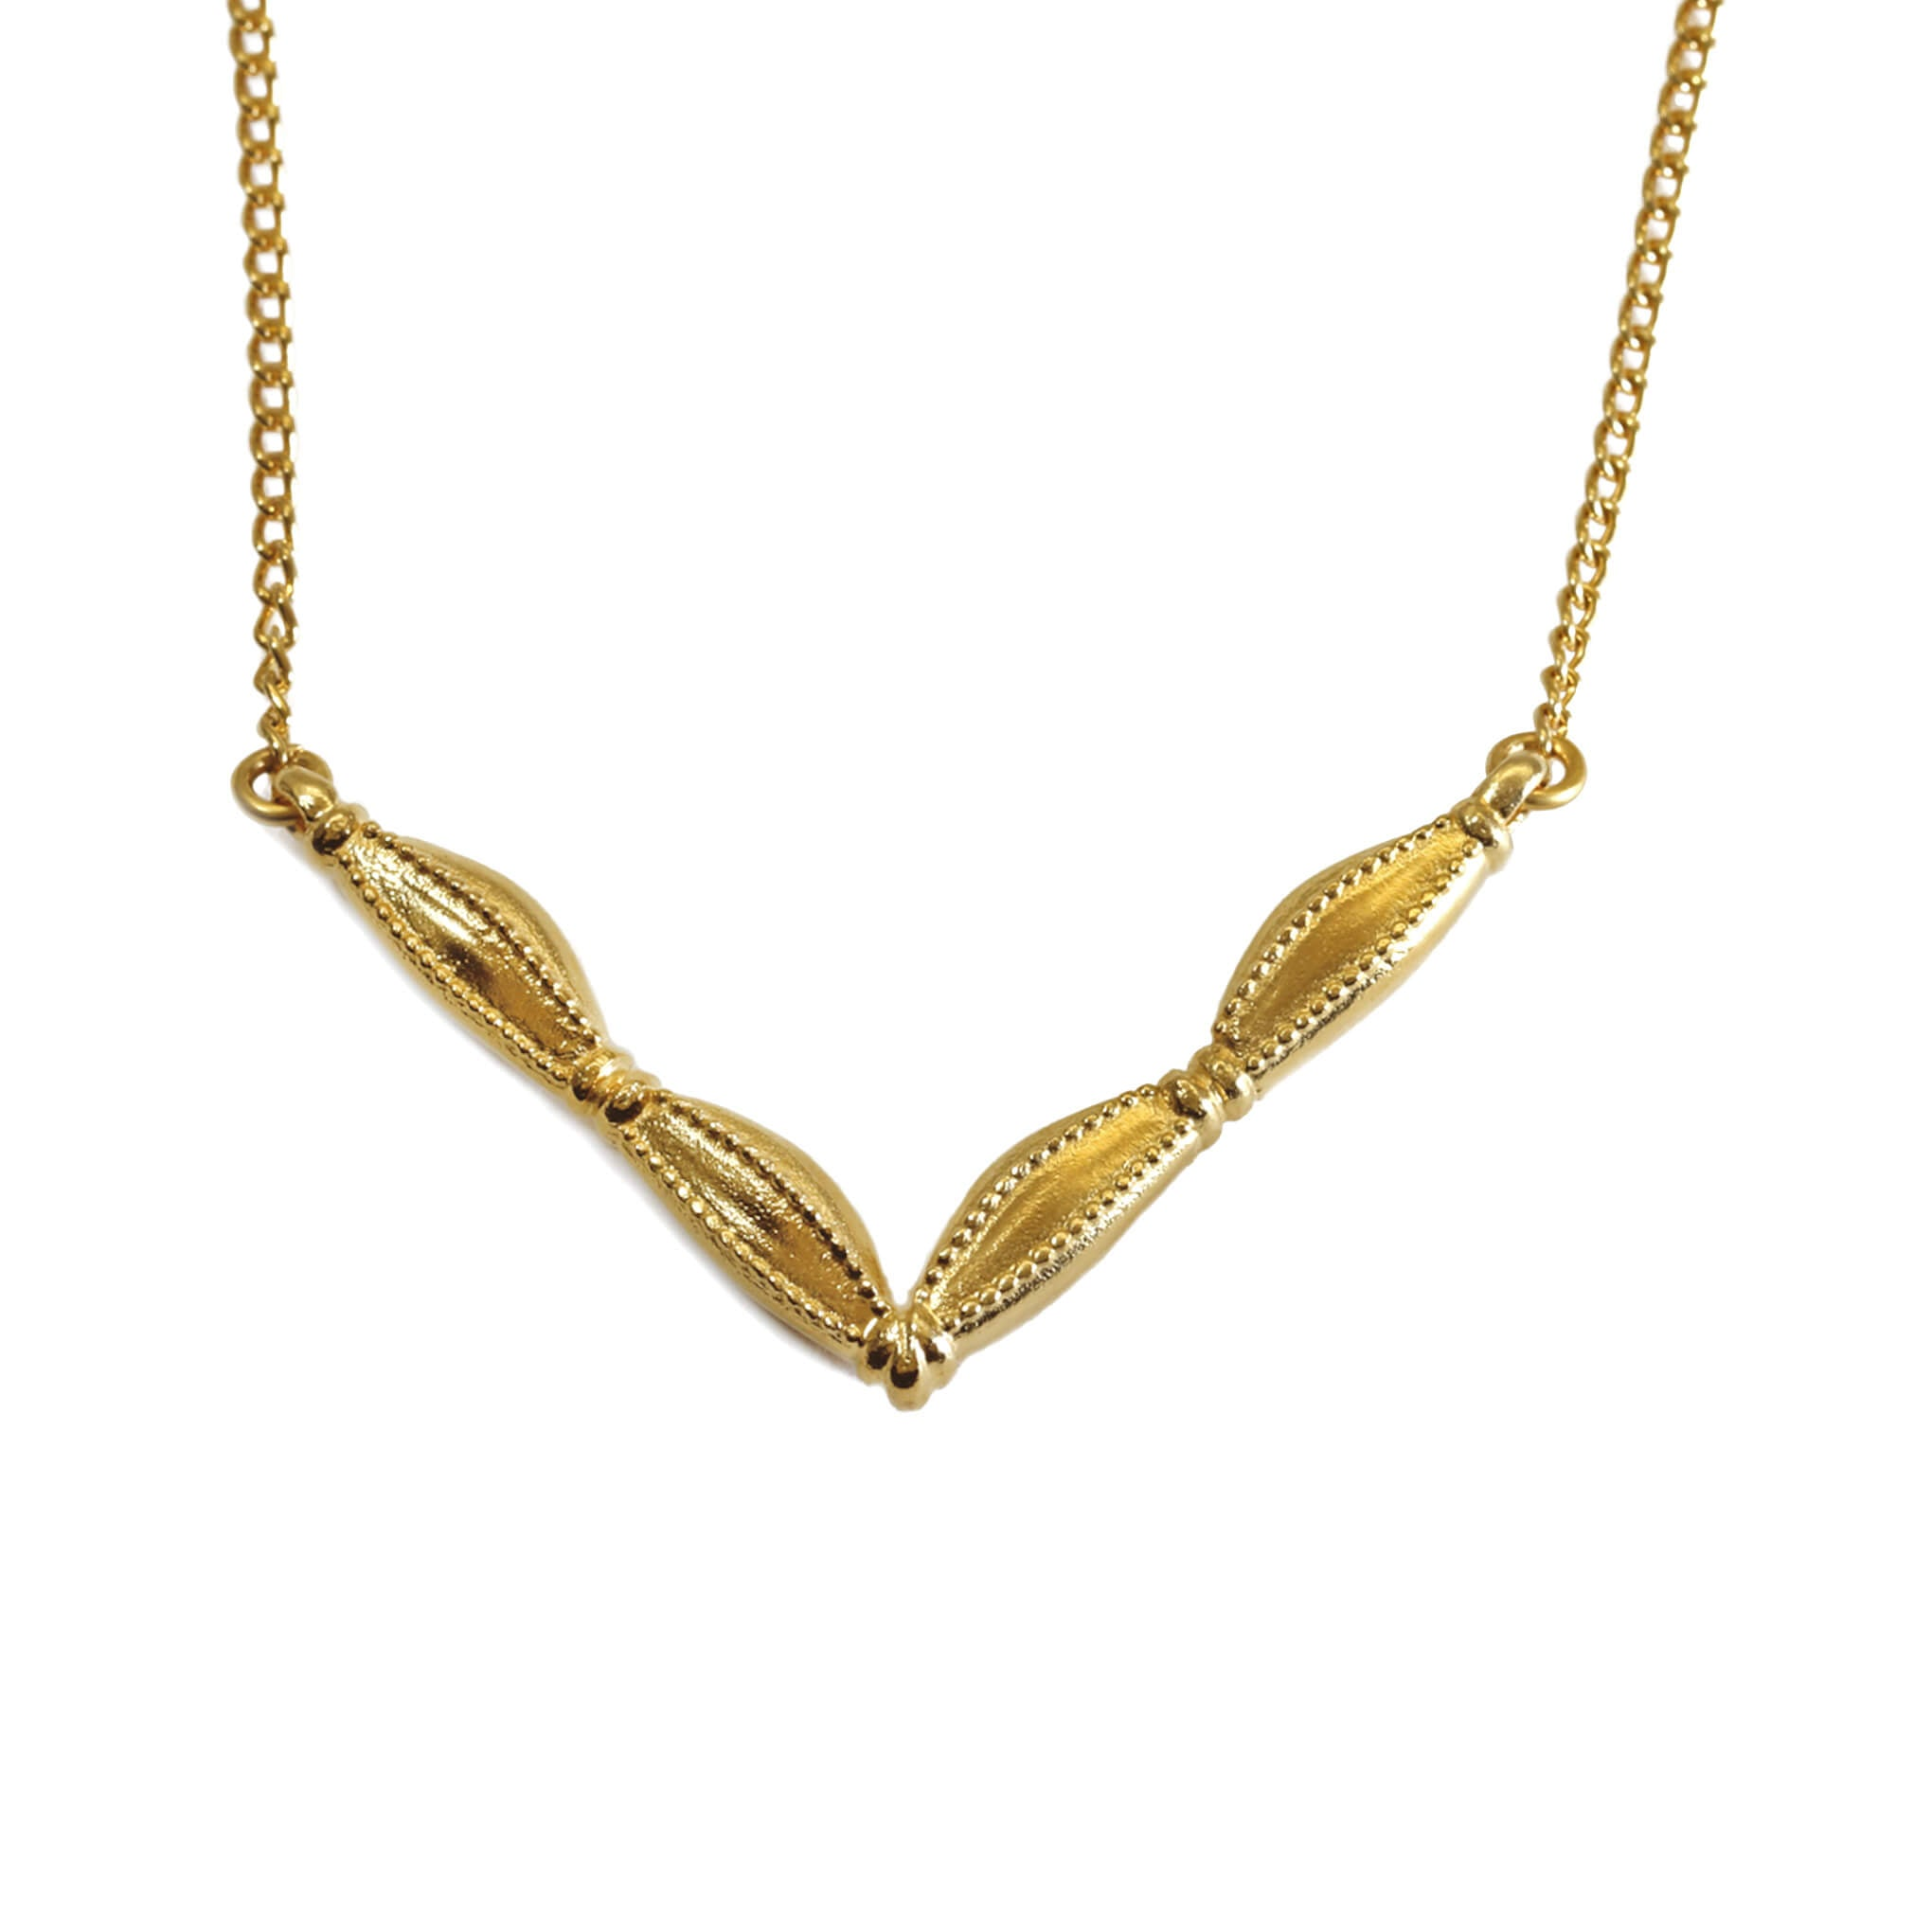 Mantid Yellow Gold Necklace